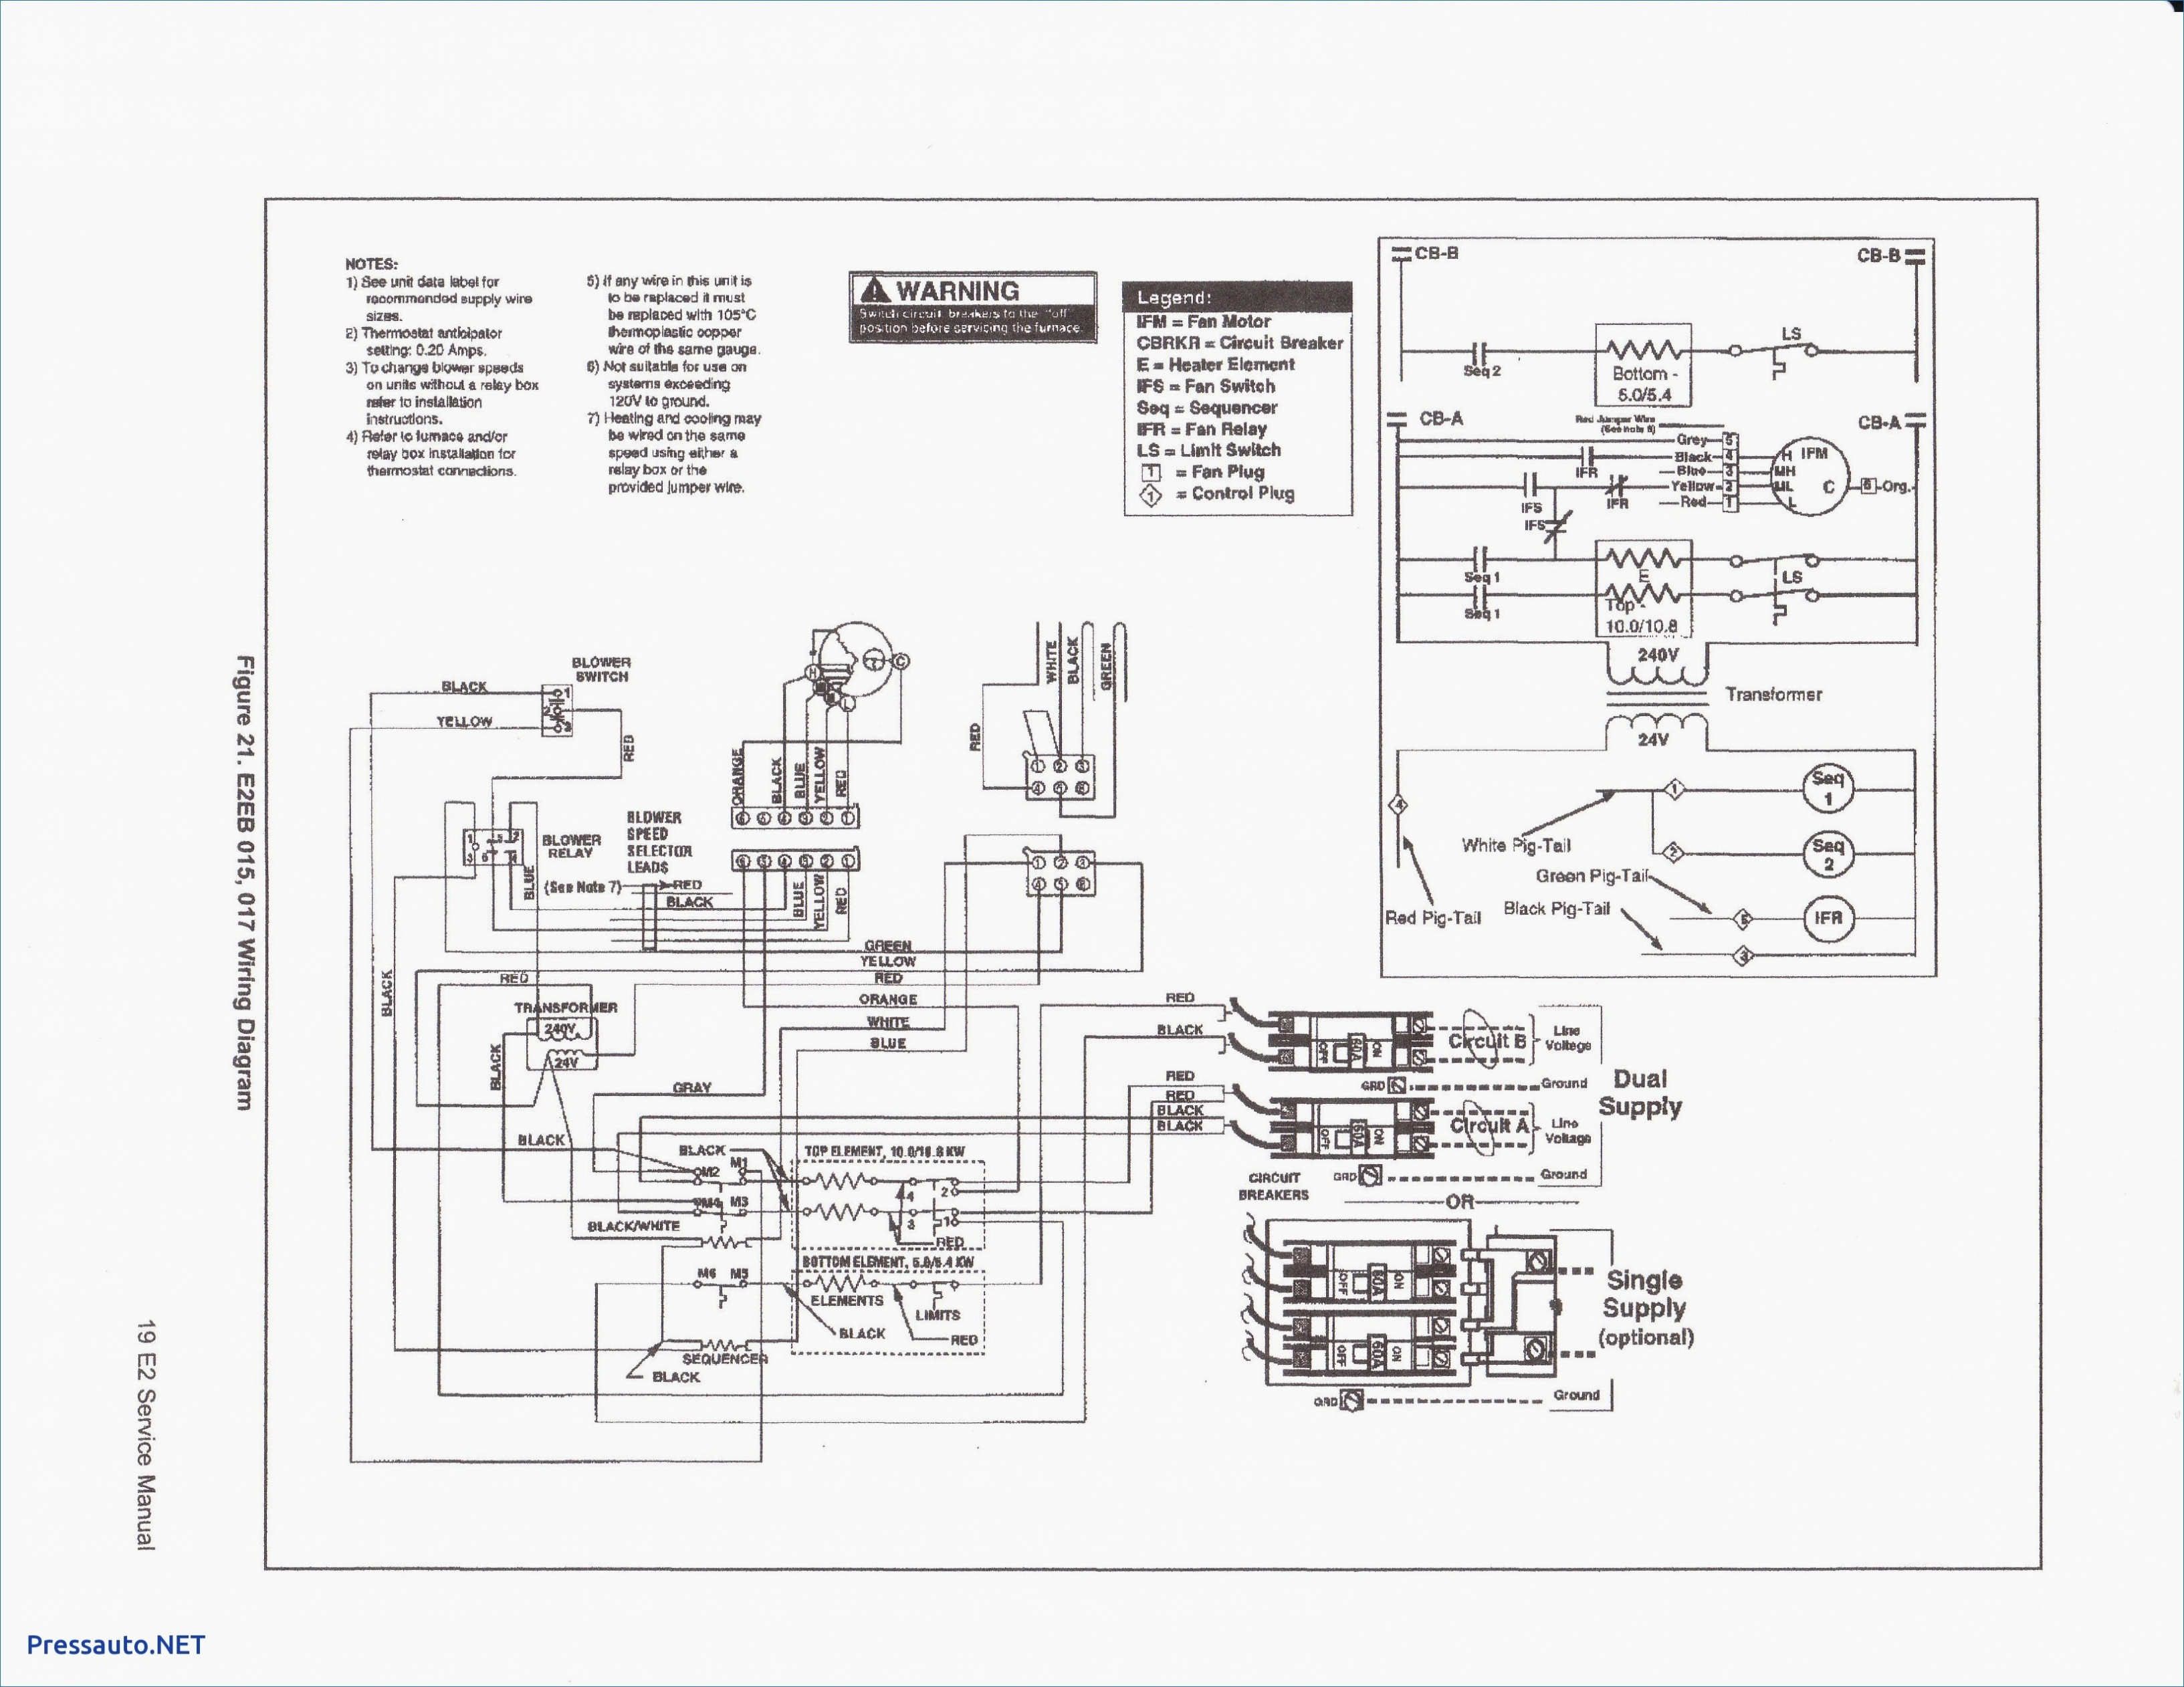 Goodman Air Handler Wiring Diagram For Ar61 1 | Wiring Diagram - Goodman Air Handler Wiring Diagram